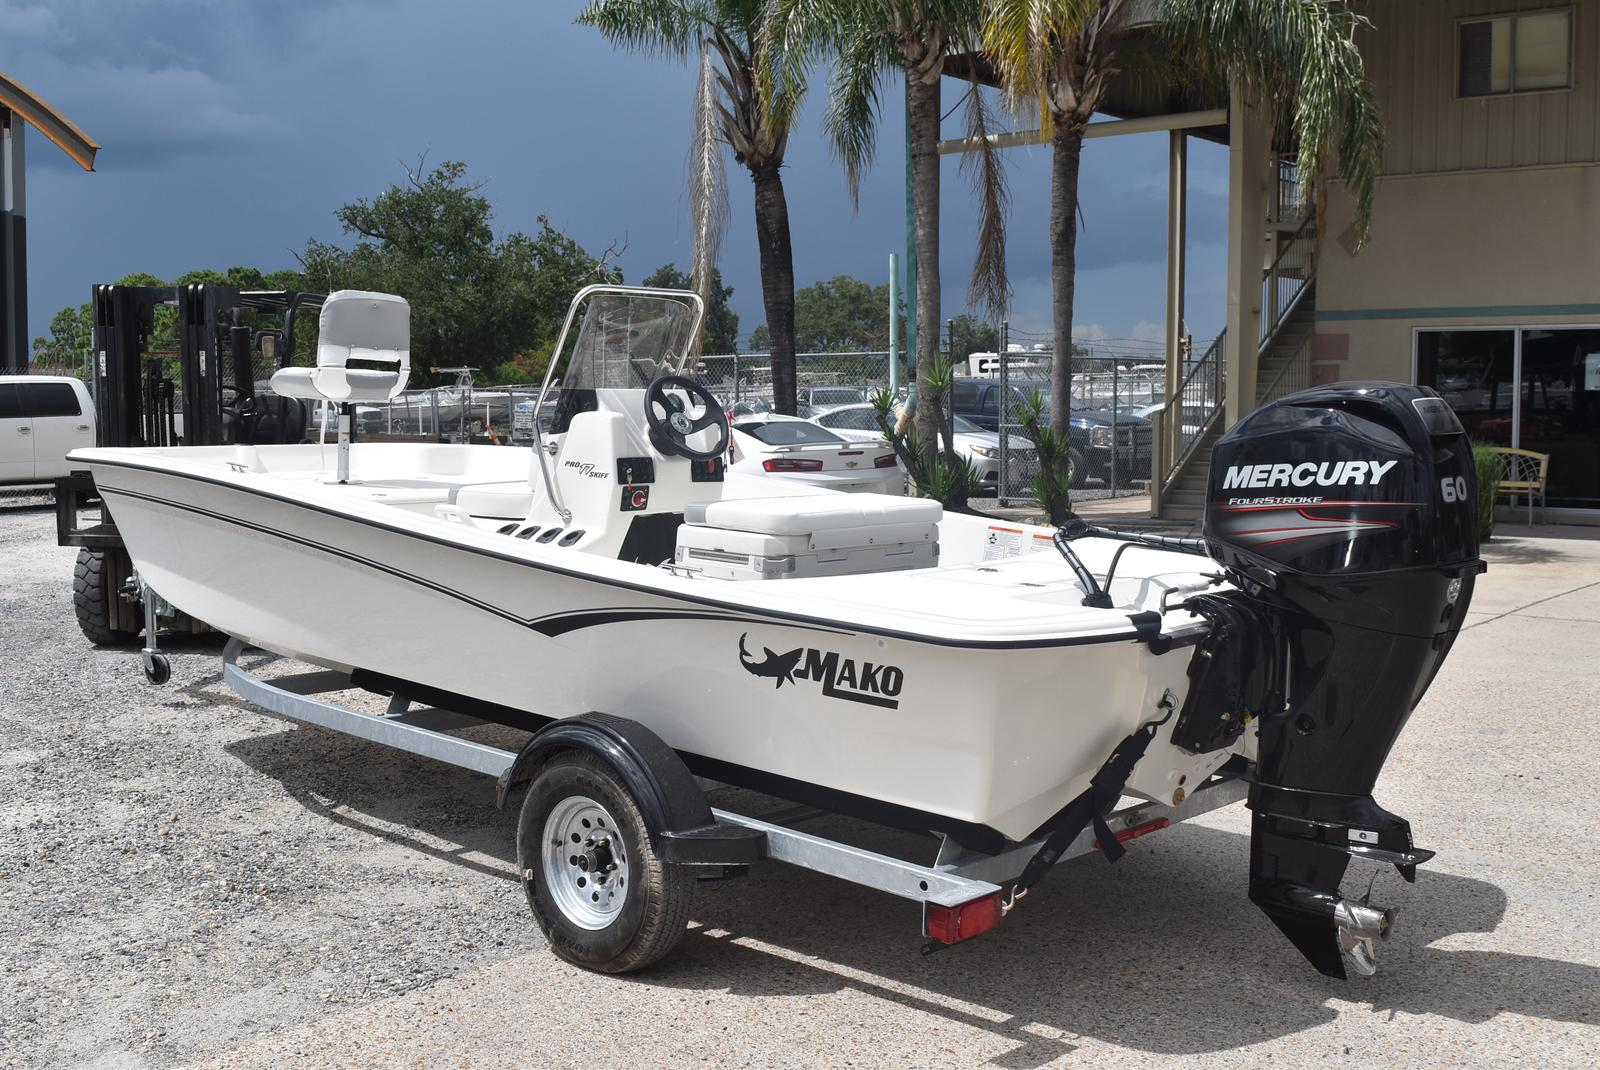 2020 Mako boat for sale, model of the boat is Pro Skiff 17, 75 ELPT & Image # 177 of 702